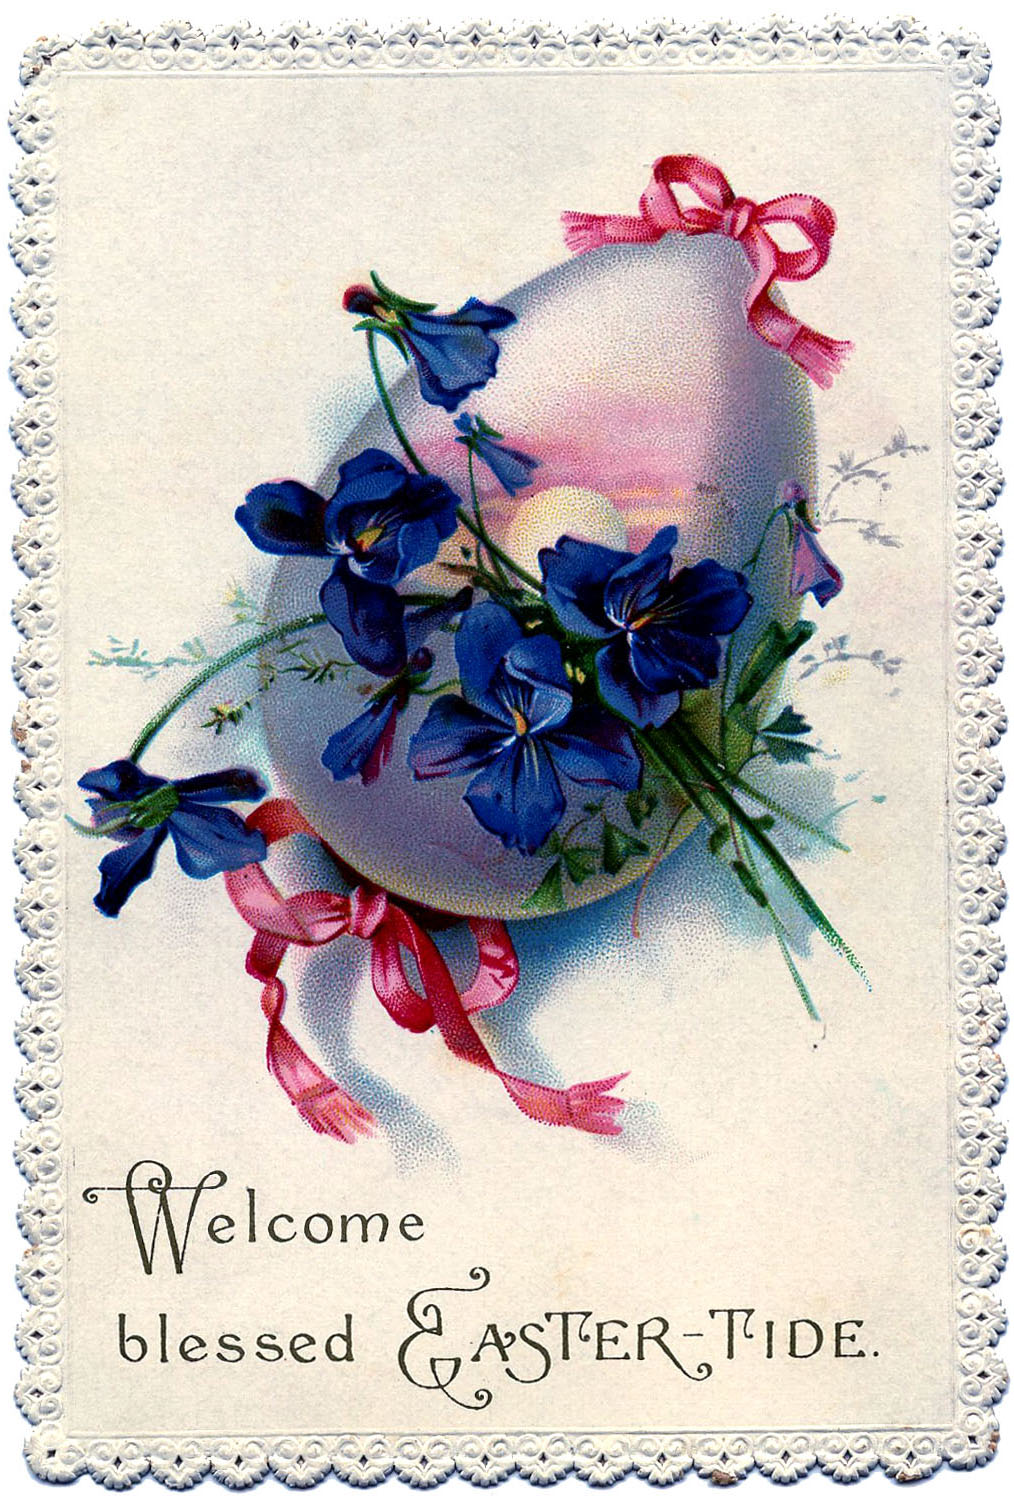 egg+violets+vintage+image-graphicsfairy002